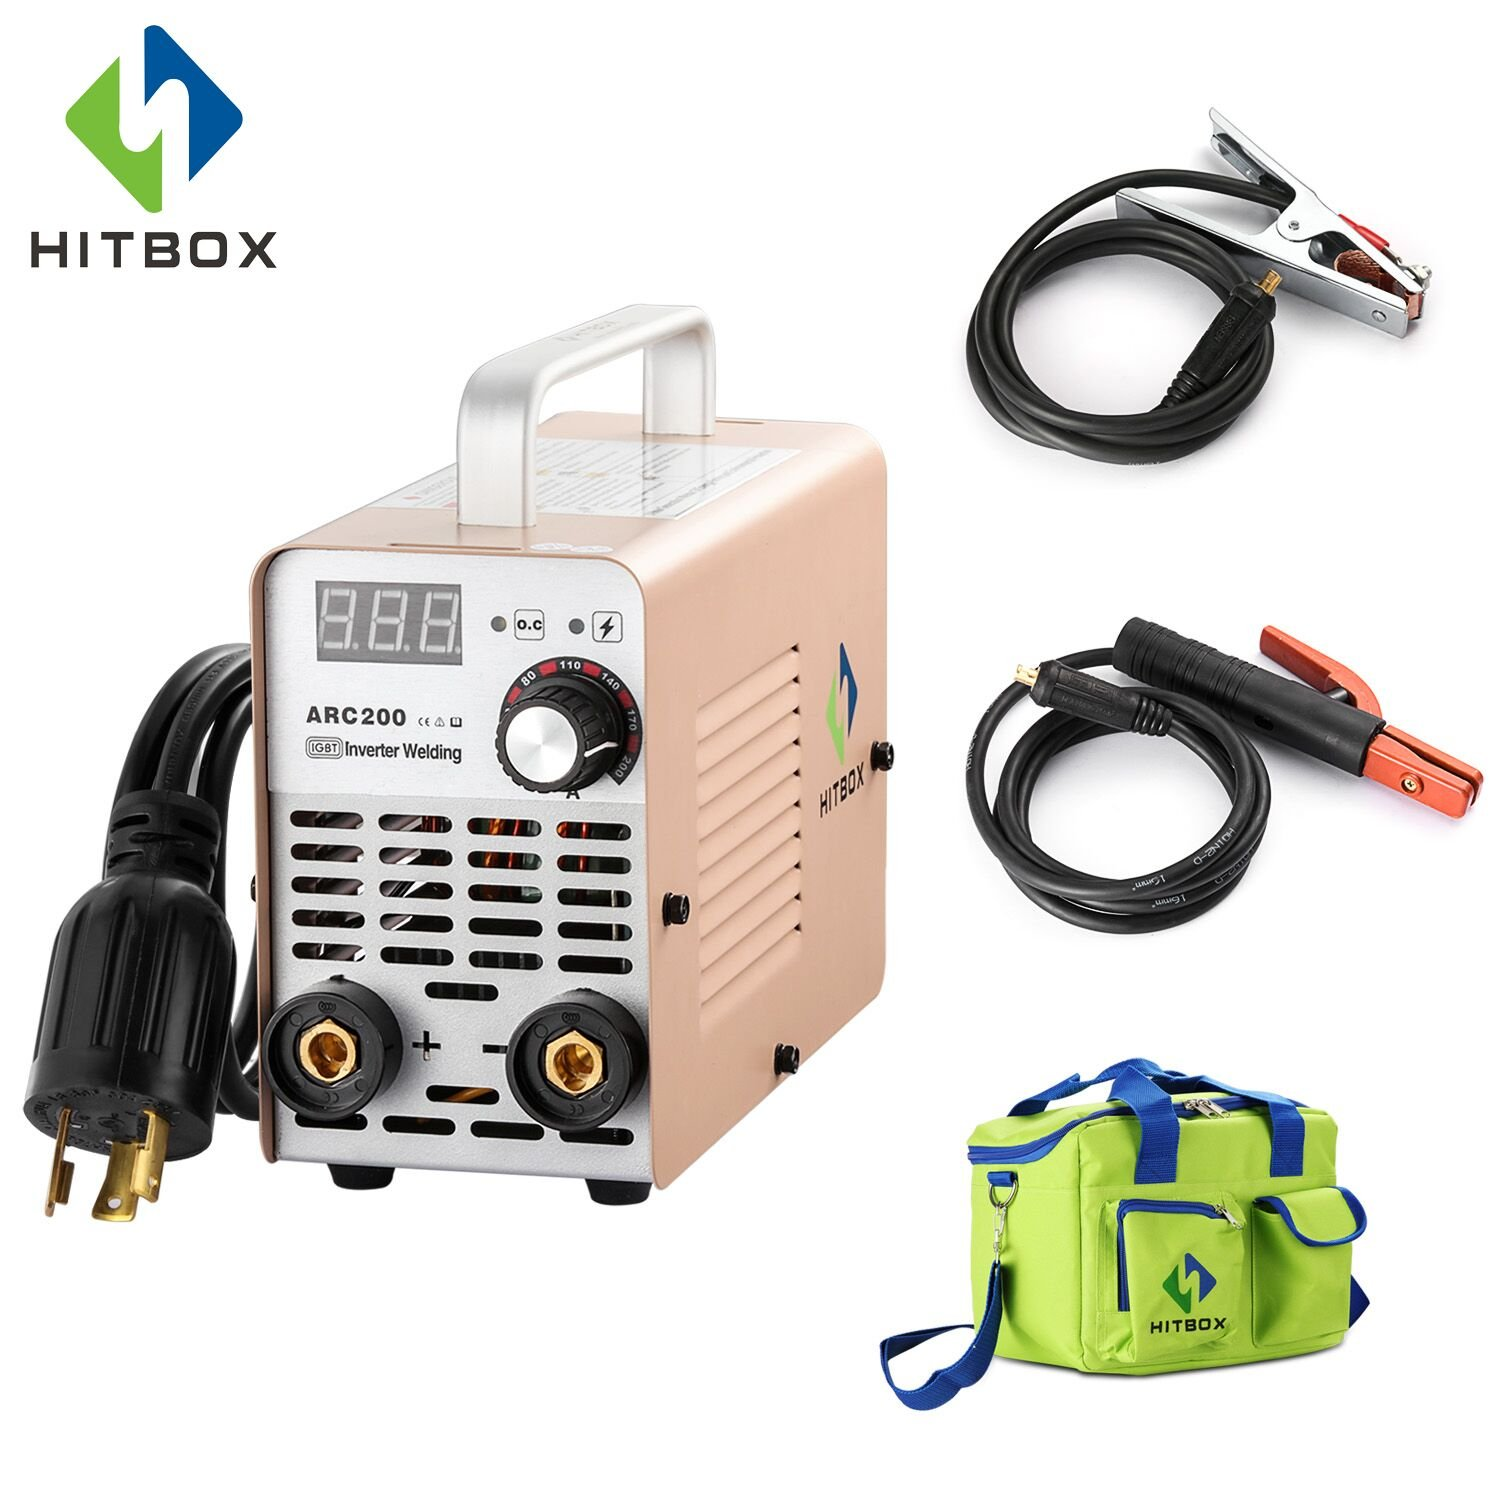 ARC Welder 200A Stick DC 220V Inverter Welding Machine MMA200 ZX7 Rod Stick Portable Welder Complete Package Ready to Use HITBOX SHENZHEN UNITWELD WELDING AND MOTOR